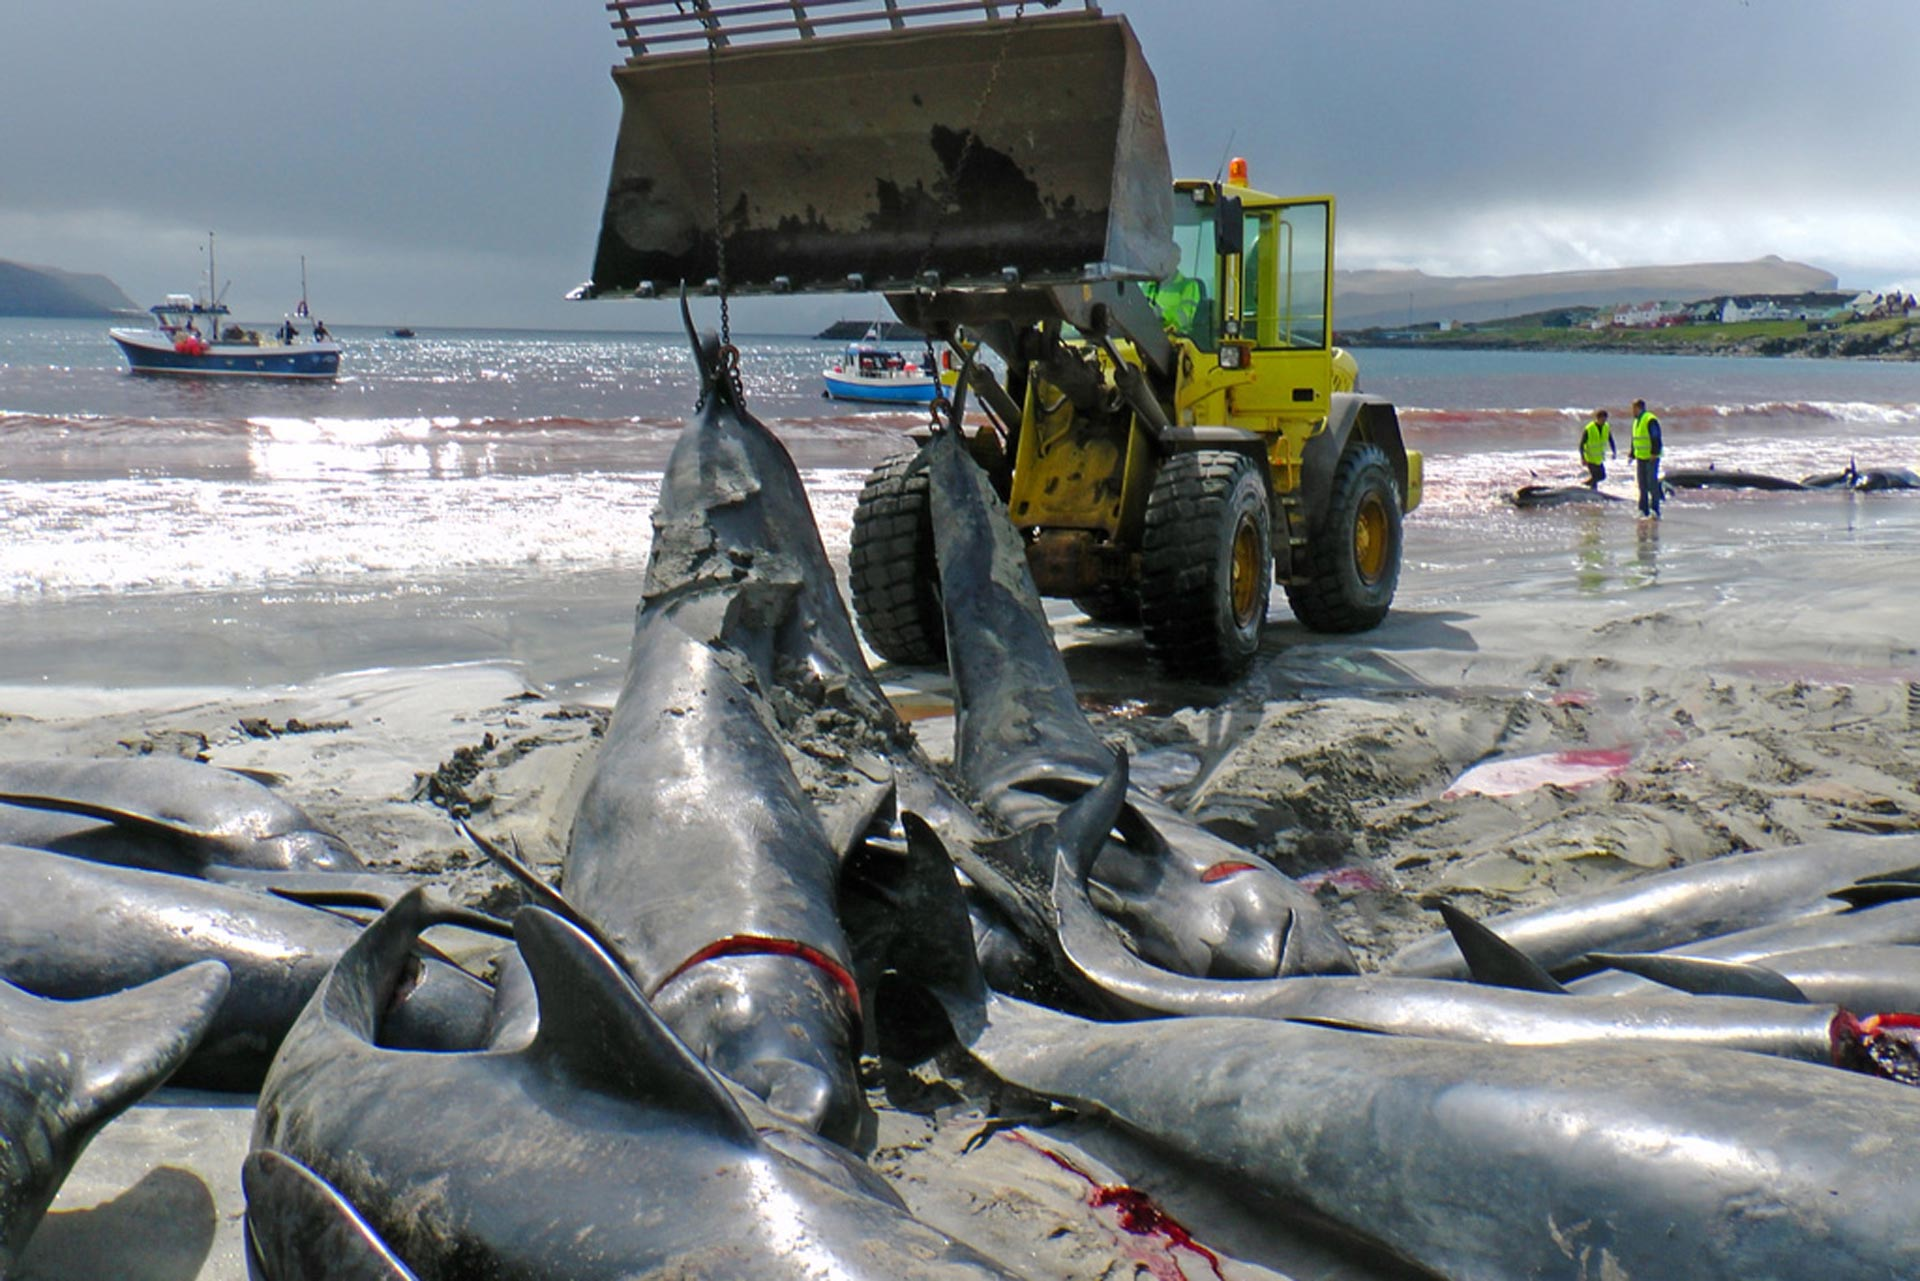 Hunted pilot whales are dragged into the water and then towed to the nearby port. Picture was taken after a hunt on June 5, 2012 in the Bay of Sandur. Photo: Hans Peter Roth